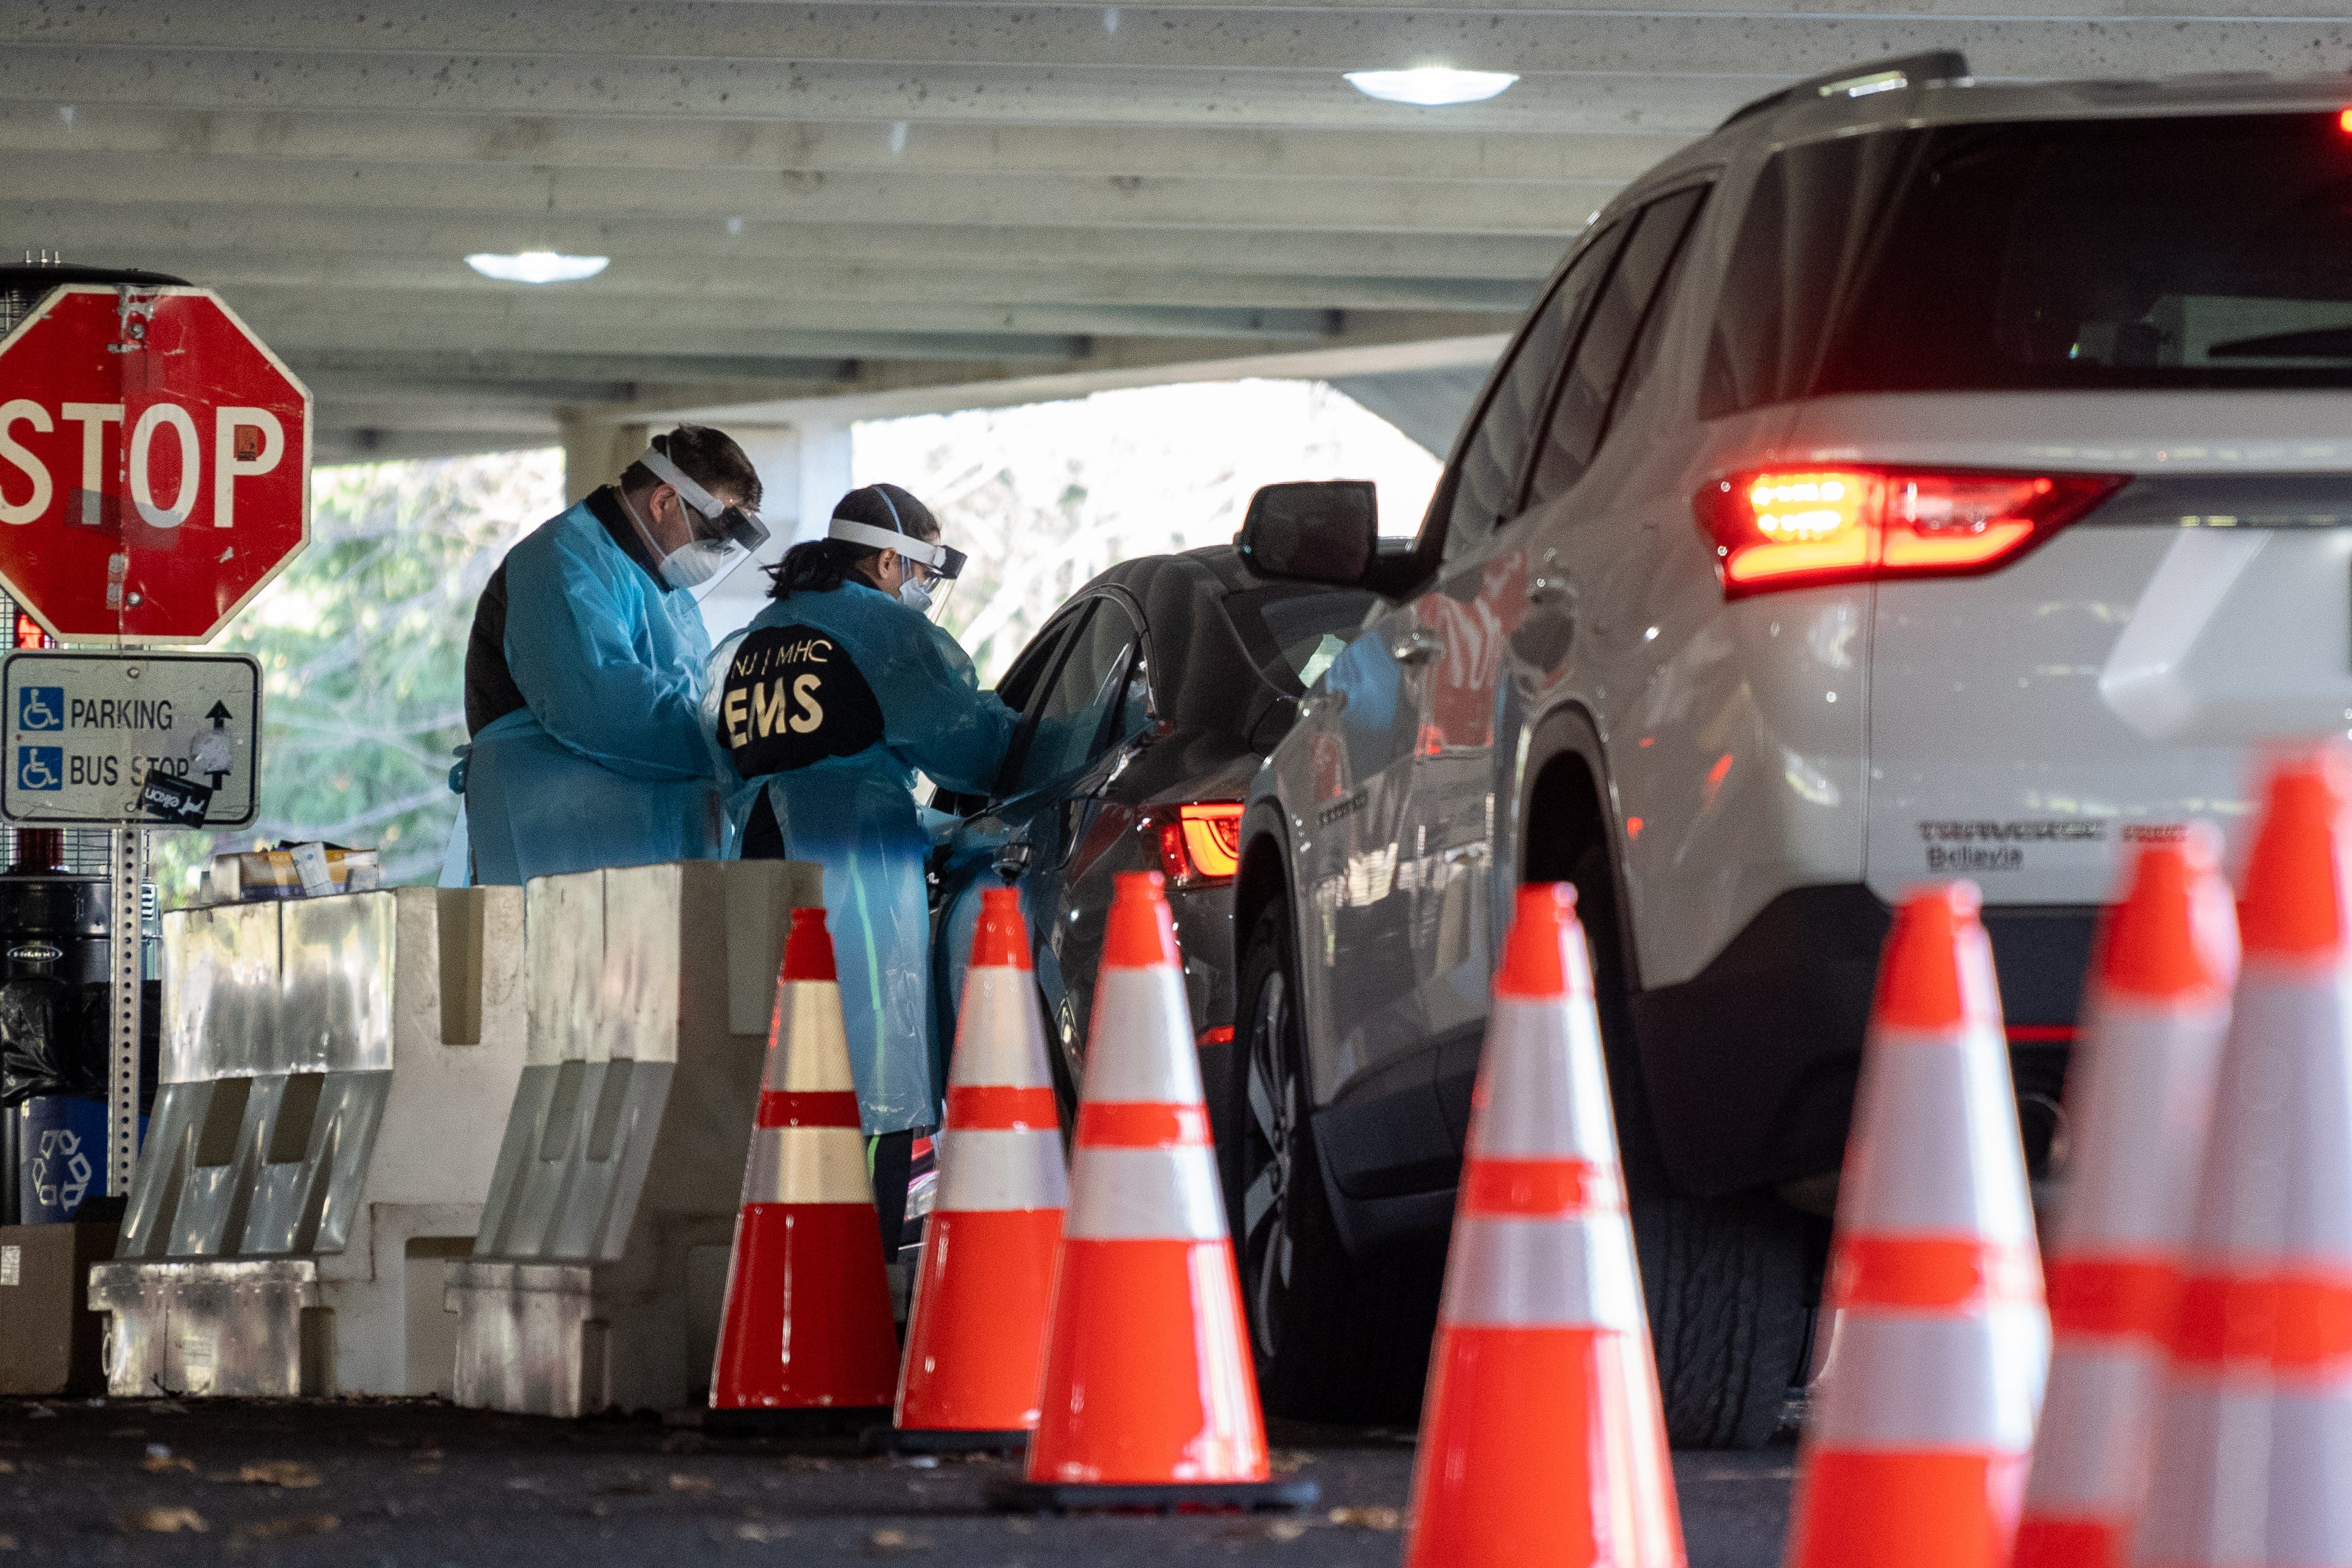 People come to be tested Dec. 3 for COVID-19 at a county-run test site in a parking lot at Bergen Community College in Paramus, New Jersey. The state is on track to hit a coronavirus milestone by the end of the year with 1 in 500 residents dead due to the virus.